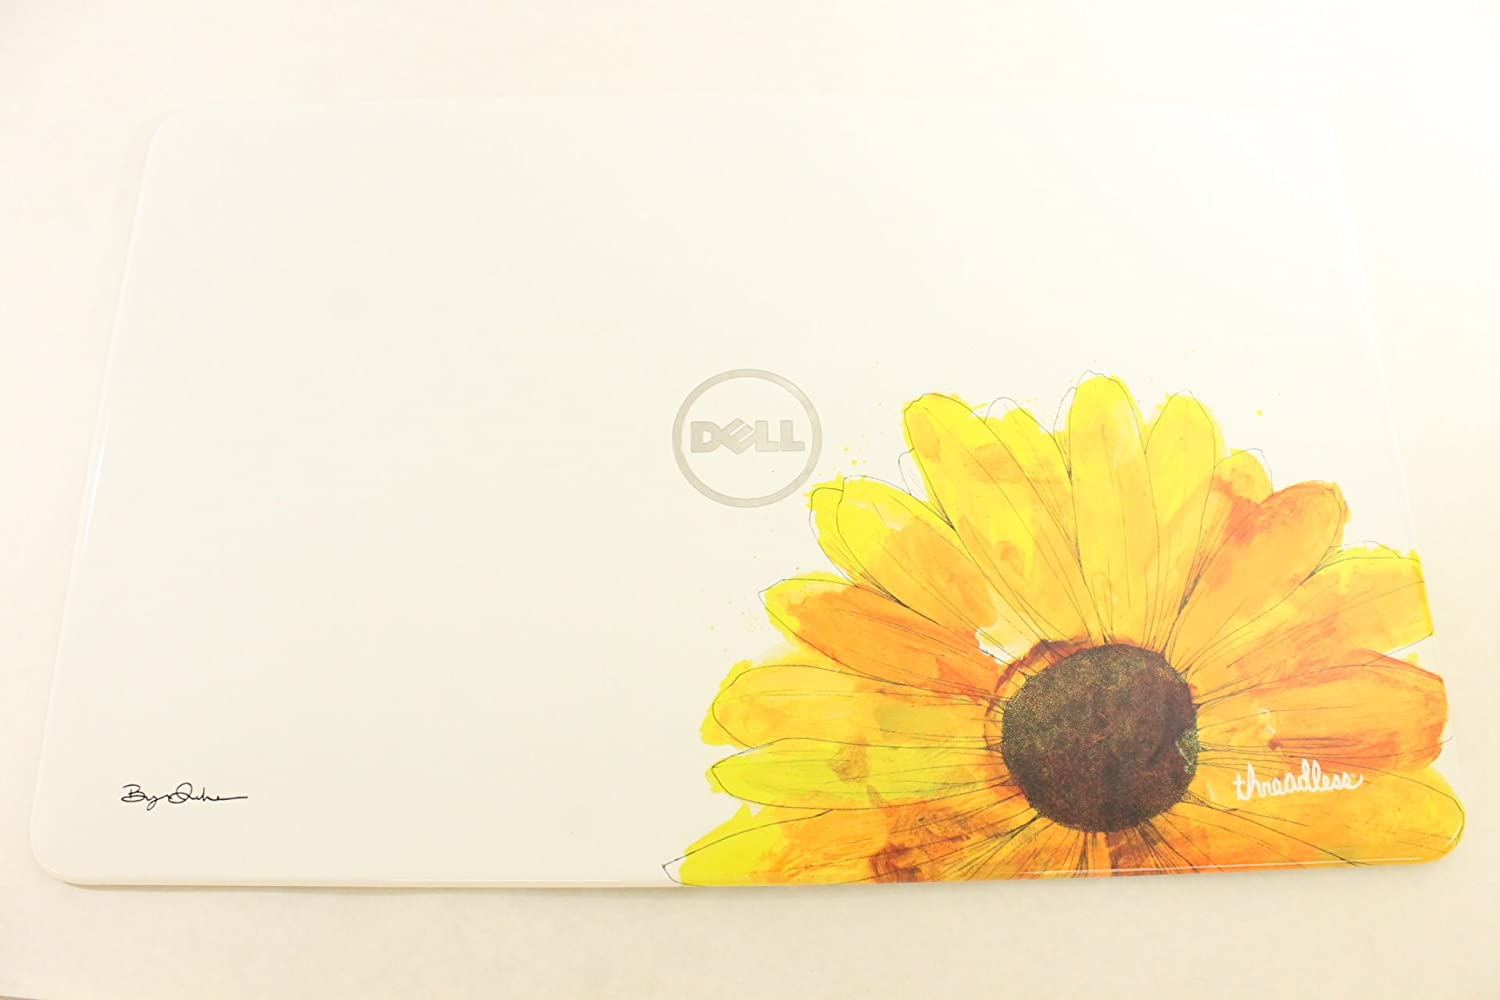 Dell LED RMC4K White Daisy LCD Back Cover Inspiron N7110 Top Lid